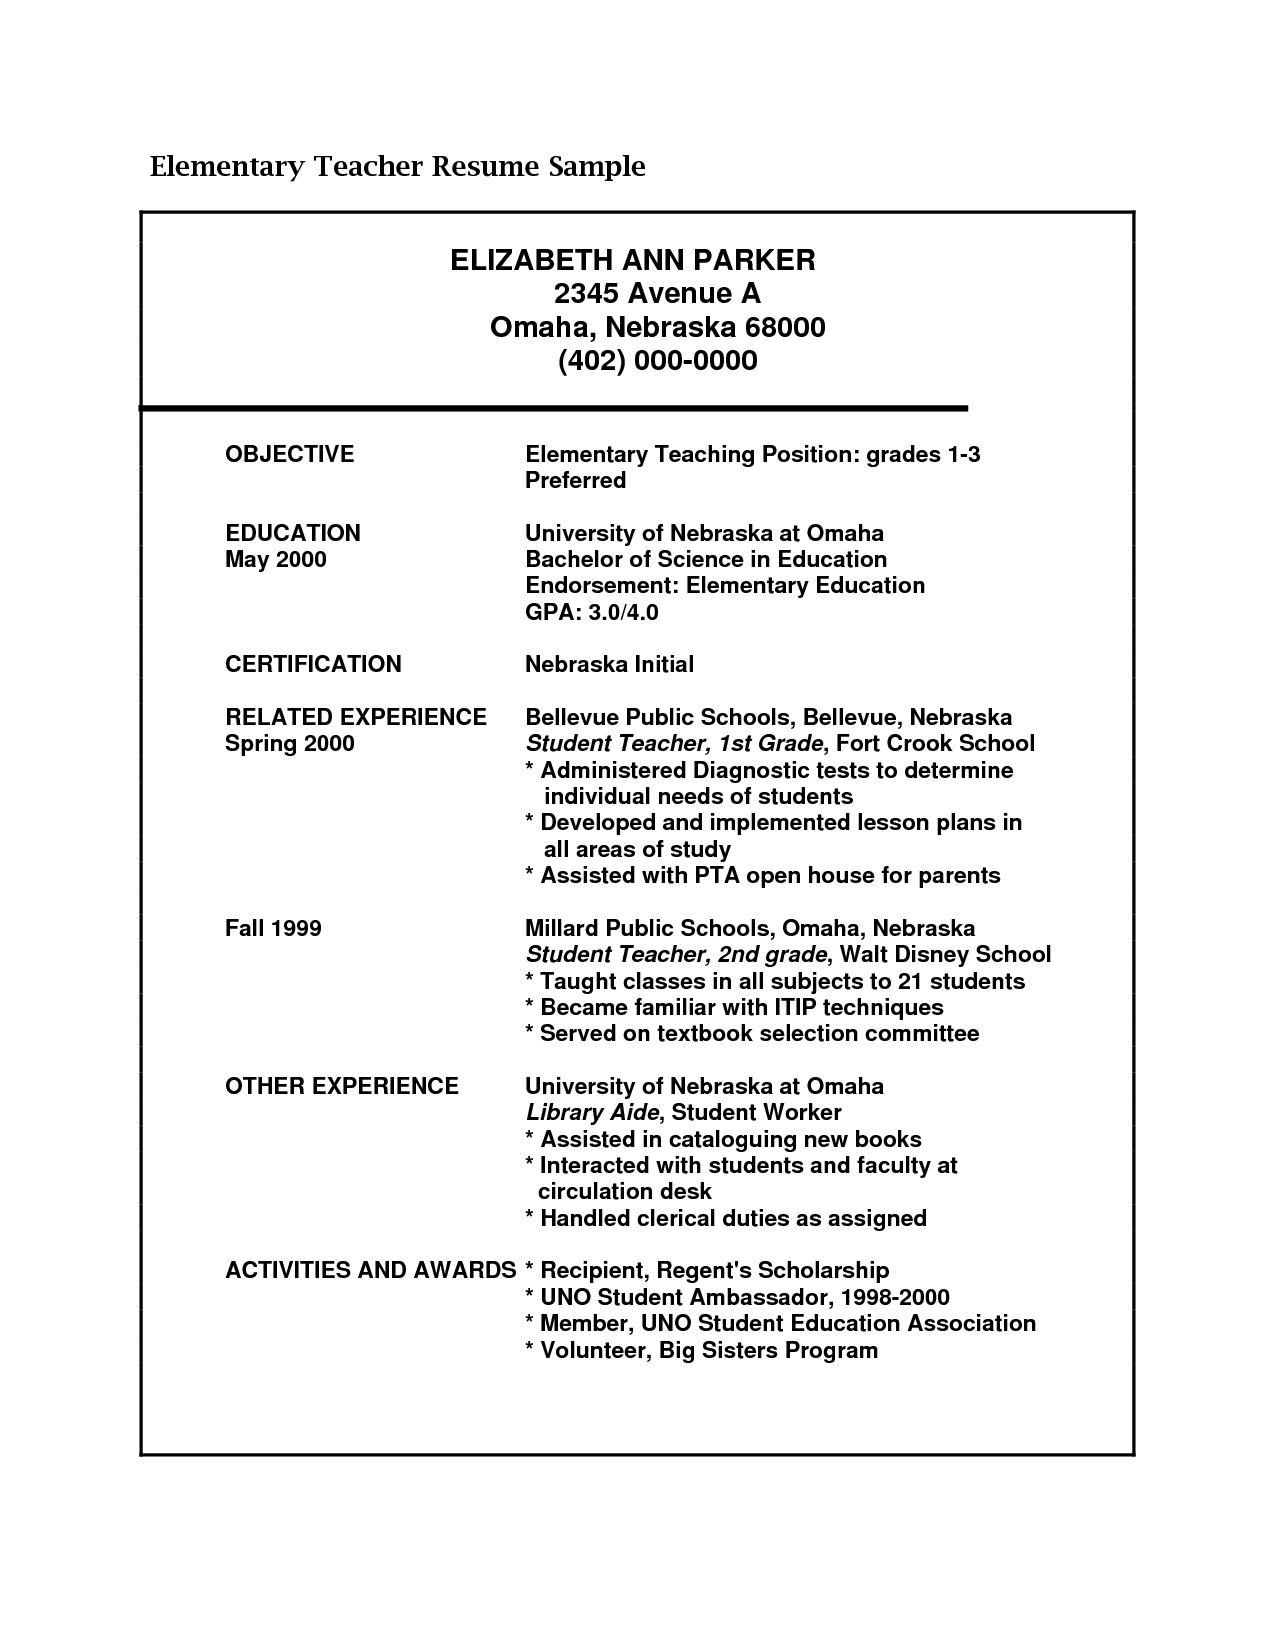 Elementary School Teacher Resume Science Teacher Resume Objective  Httpwwwresumecareer